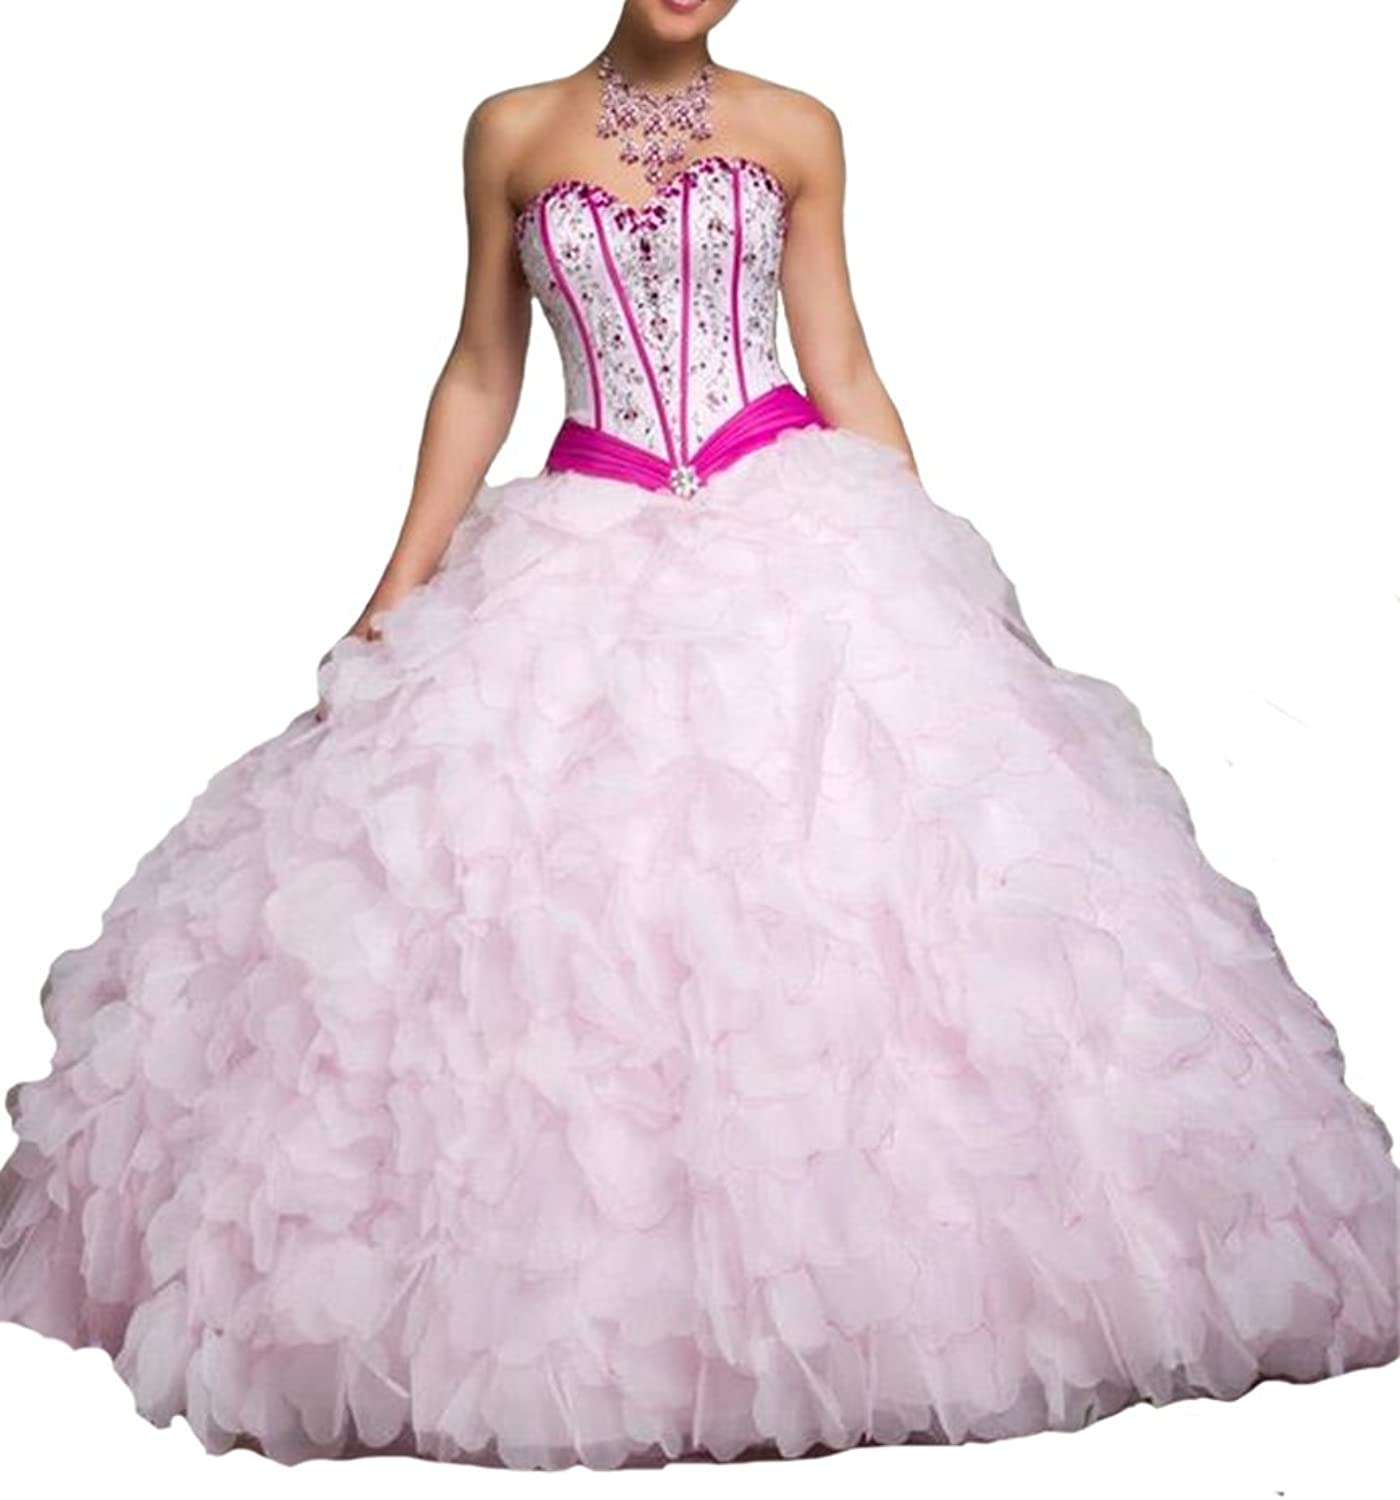 HSDJ Women's Spaghetti Straps Ball Gowns Pageant Quinceanera Dresses